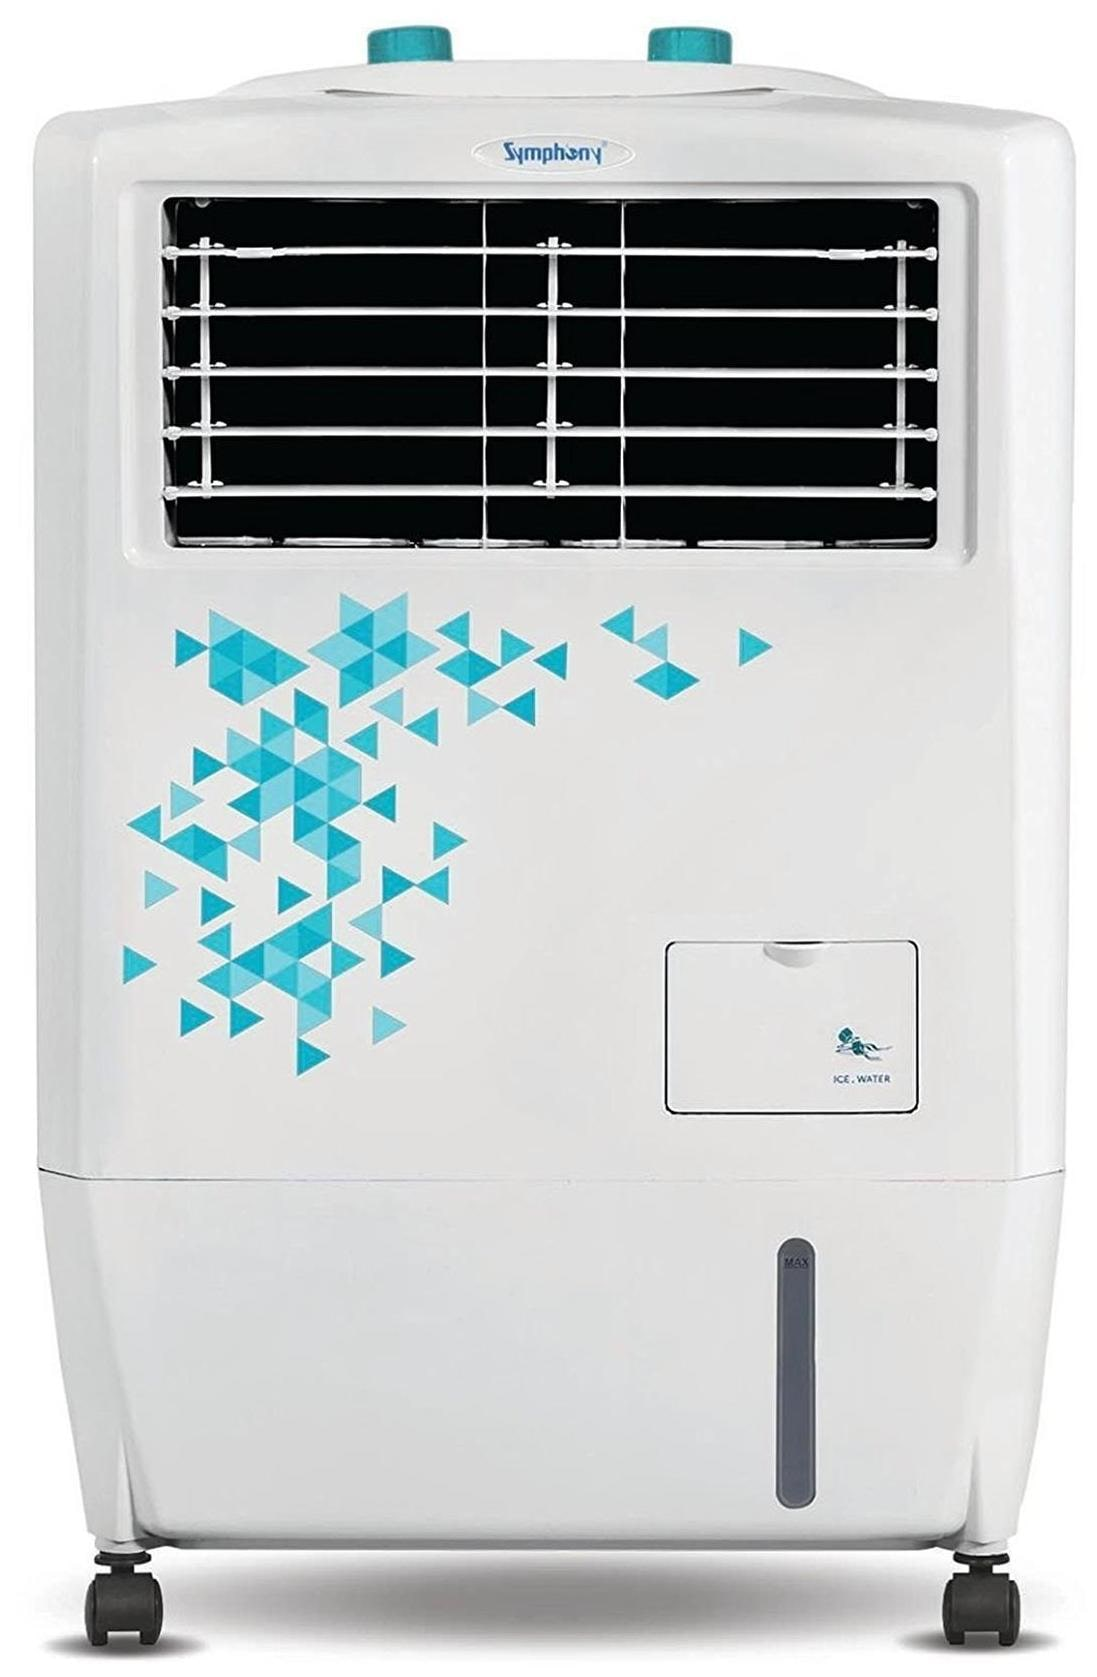 Symphony Ninja Xl 17 Ltrs Air Cooler (White)